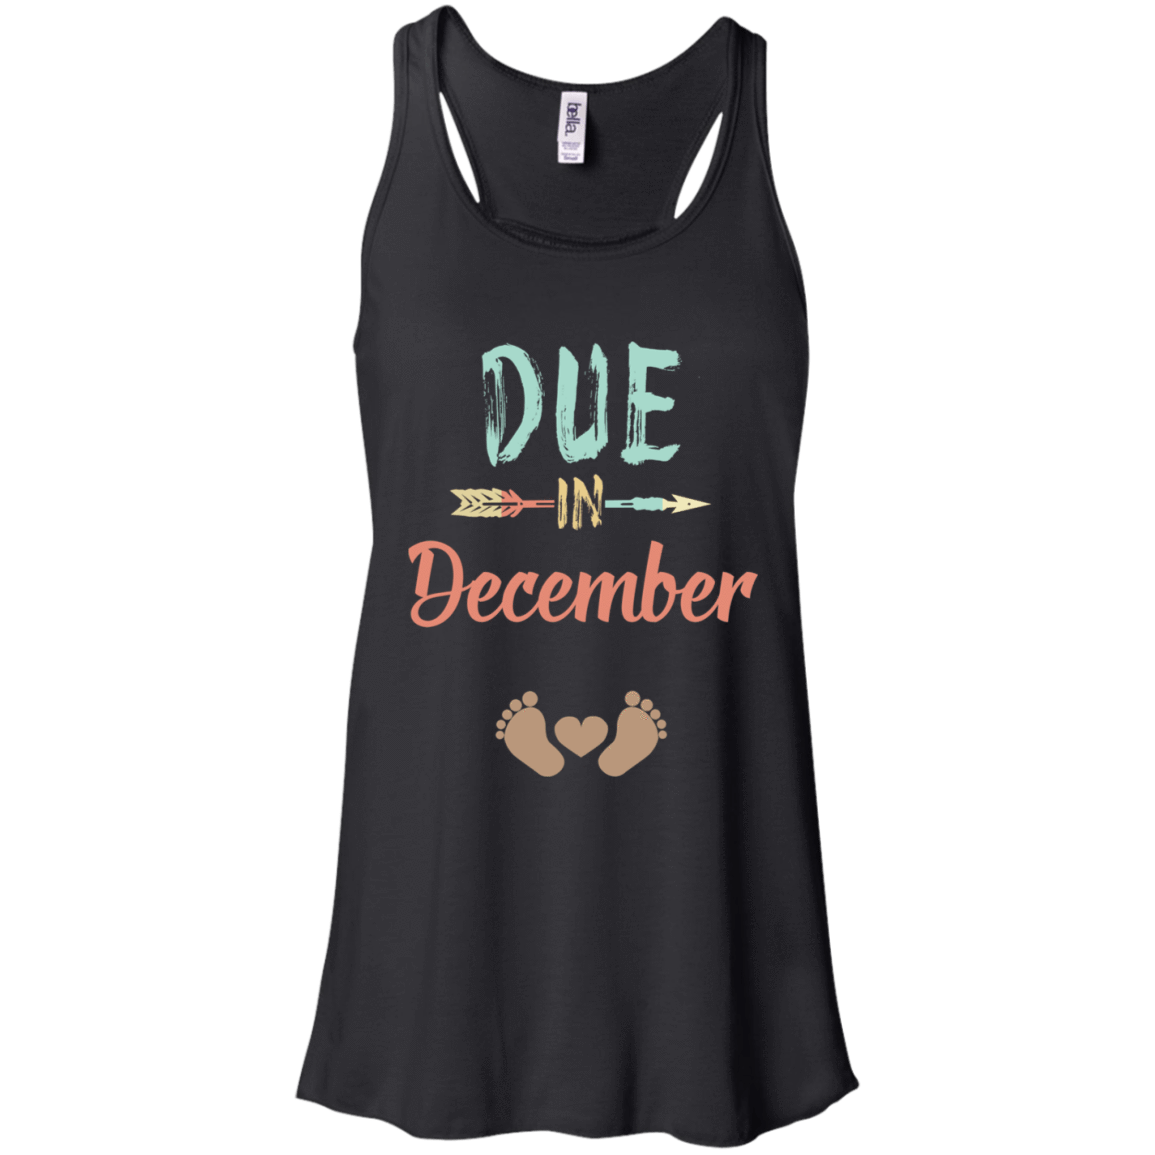 Due Date December 2019 Announcement Mommy Bump Pregnancy 974-9605-73890486-46696 - Tee Ript